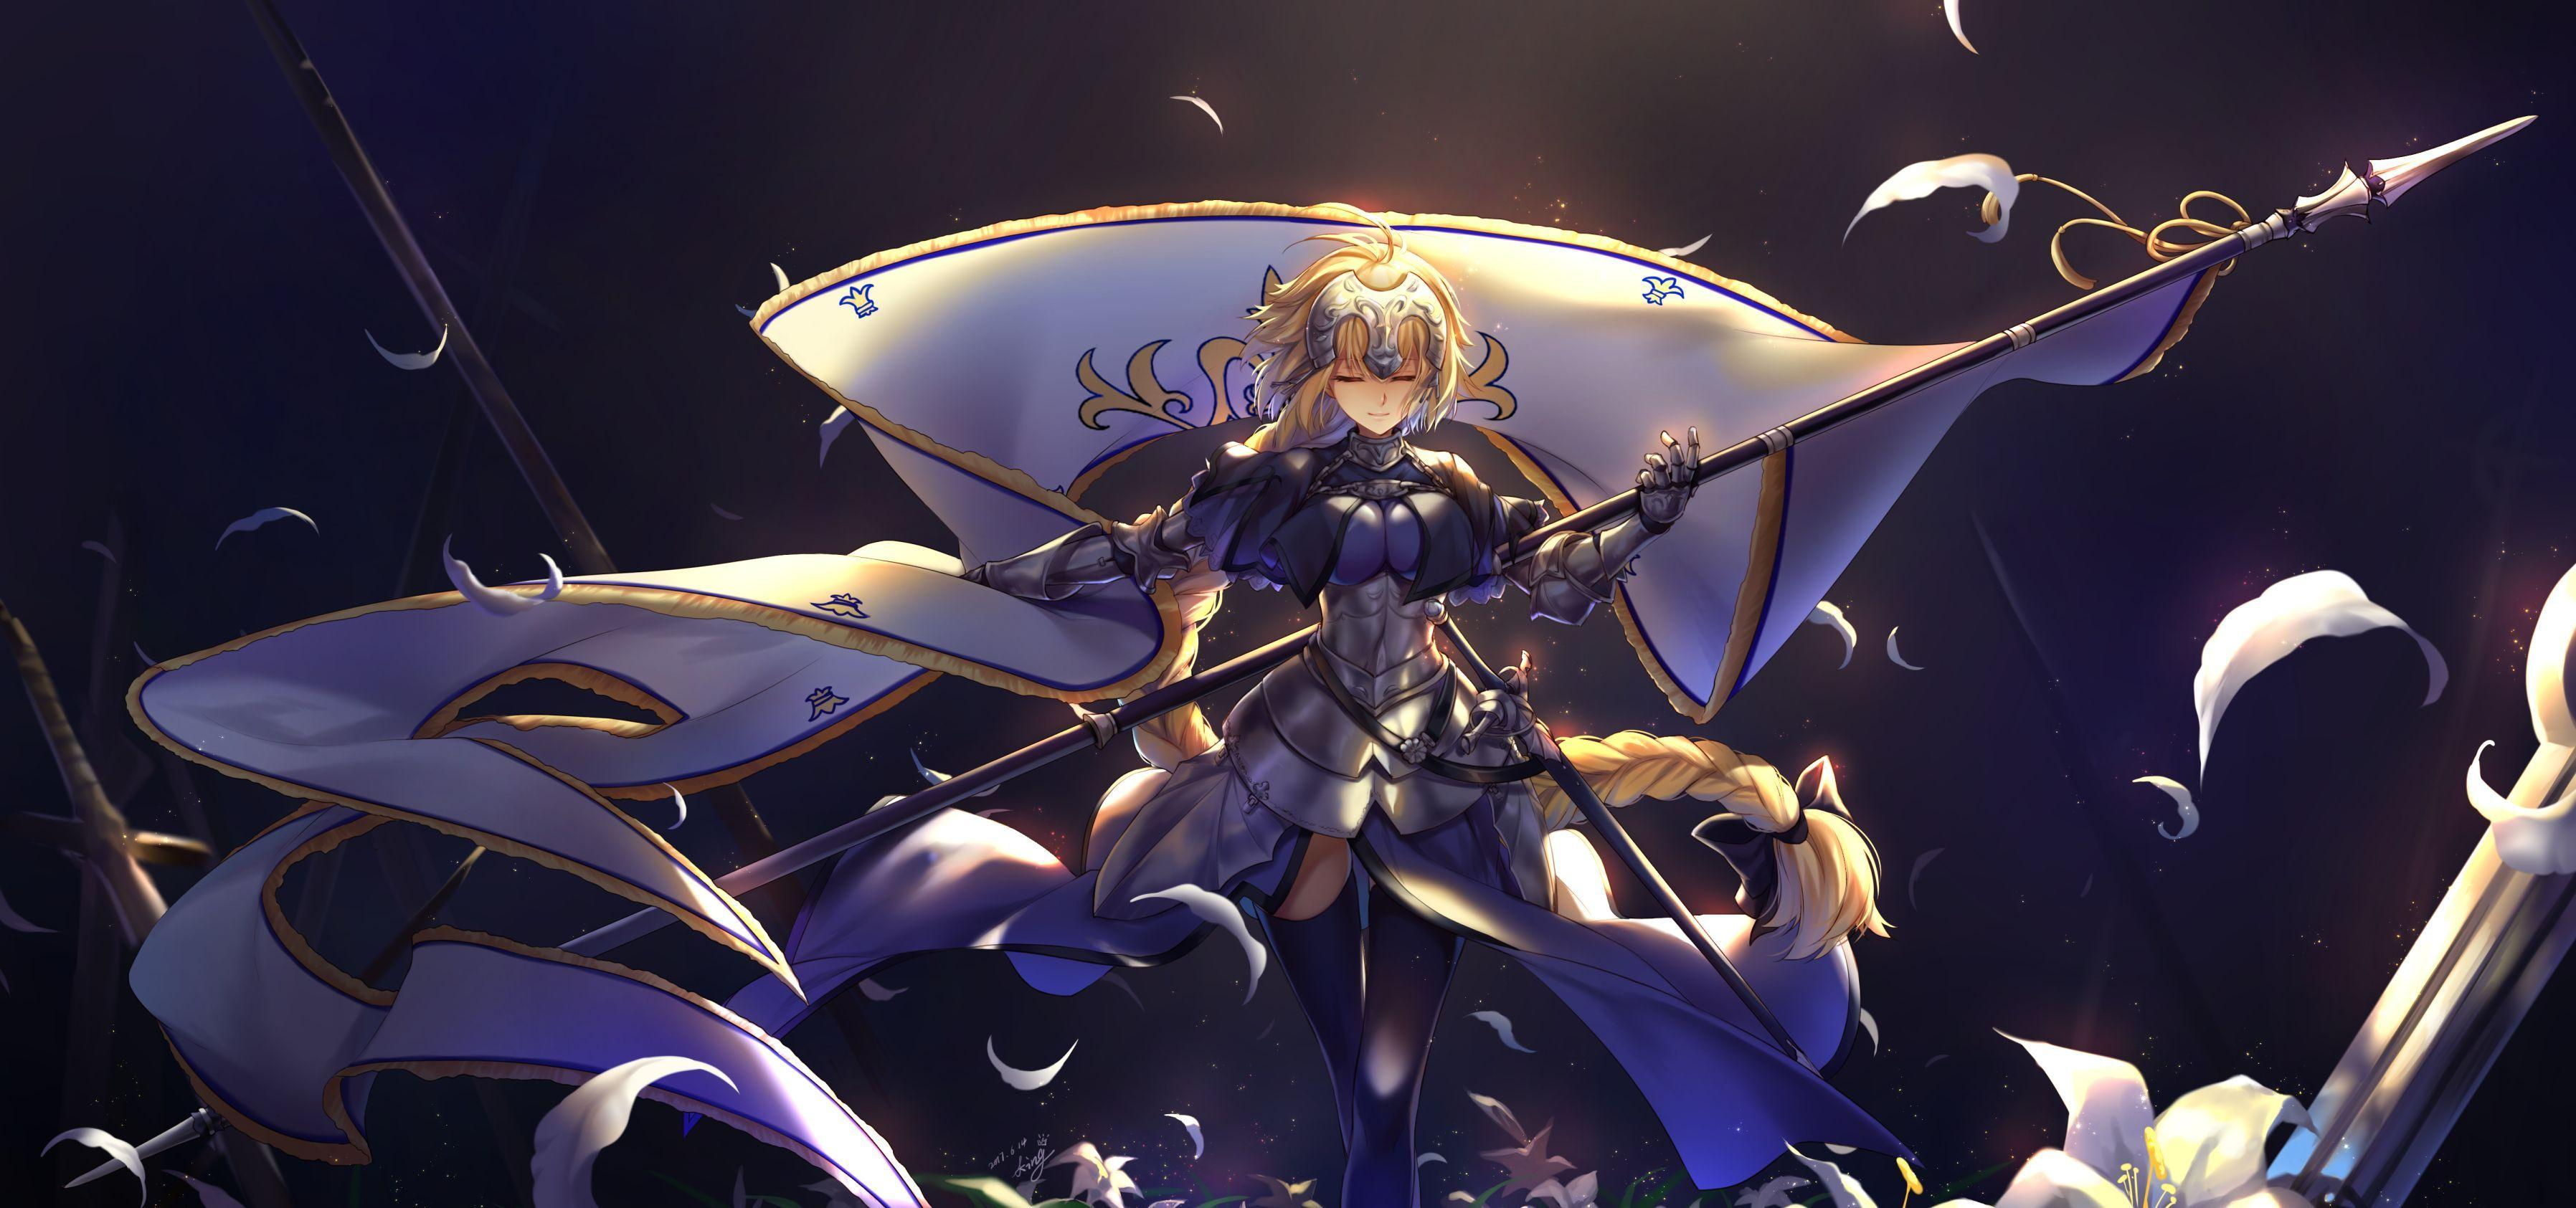 View, download, comment, and rate this 3592x1685 Fate/Grand Order